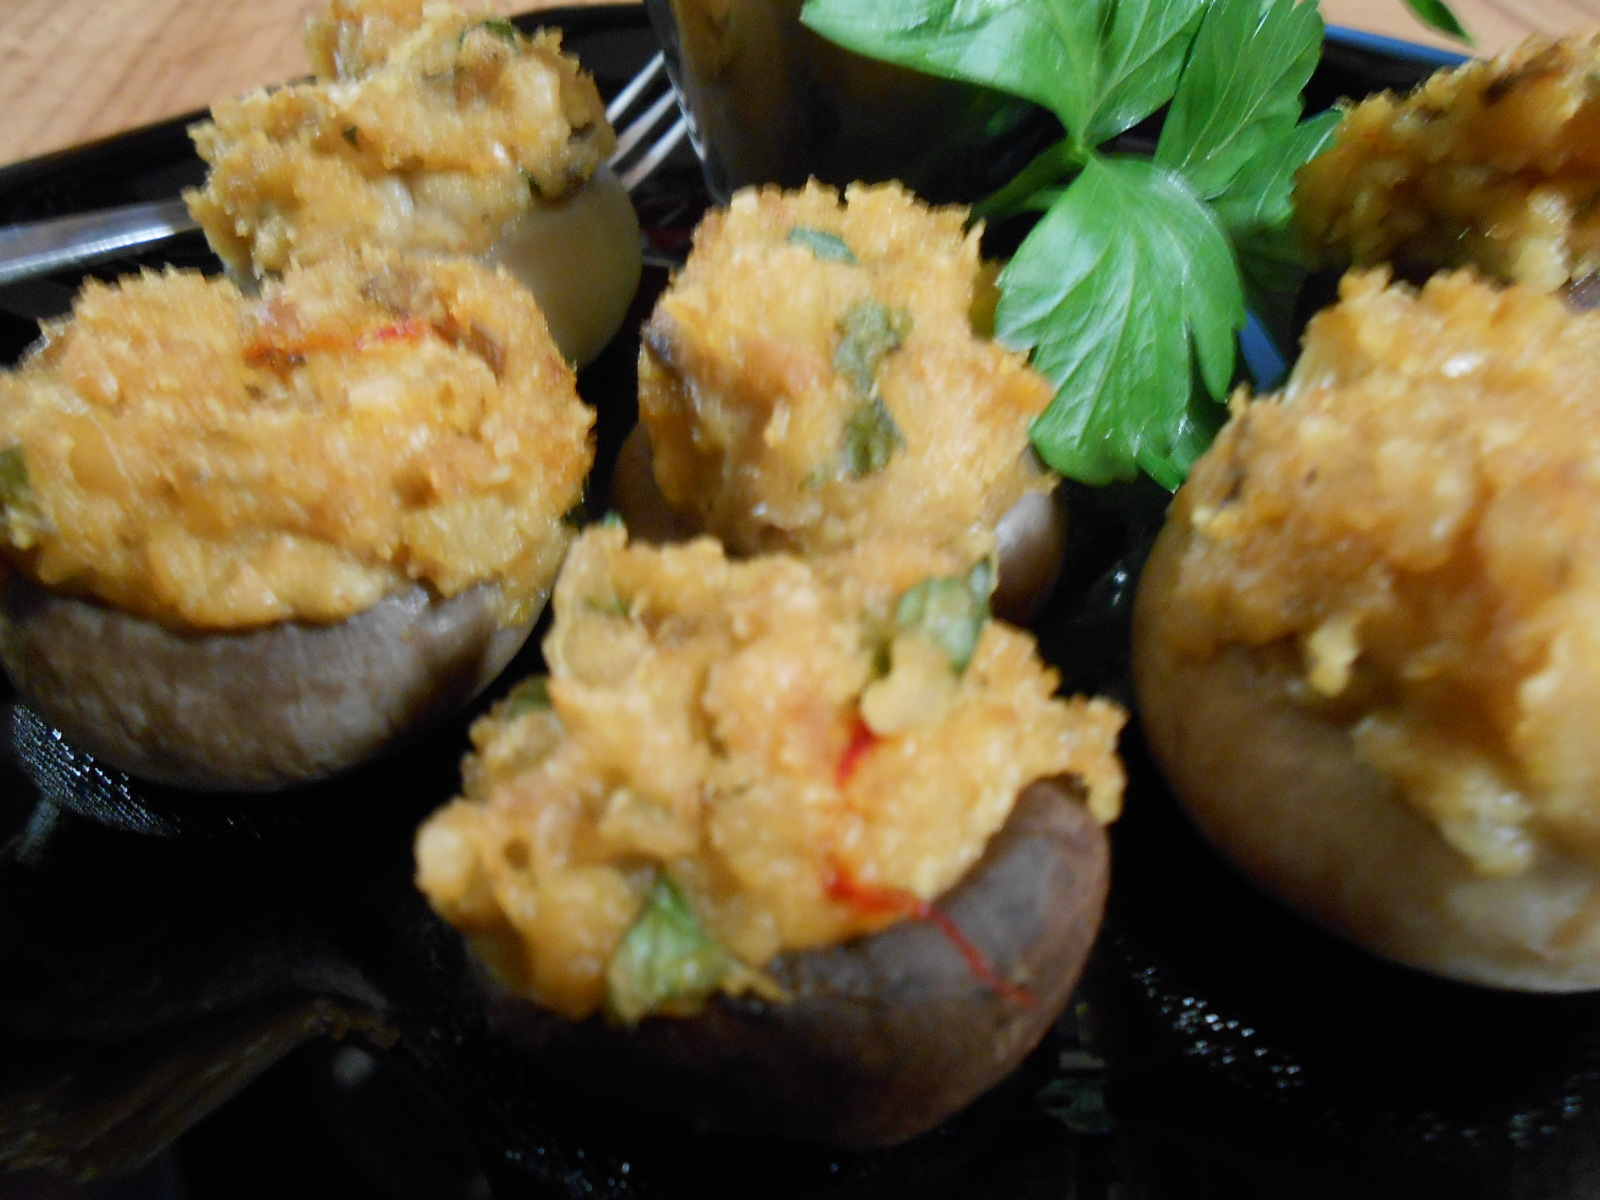 SHARON'S PEARL OYSTER STUFFED MUSHROOMS